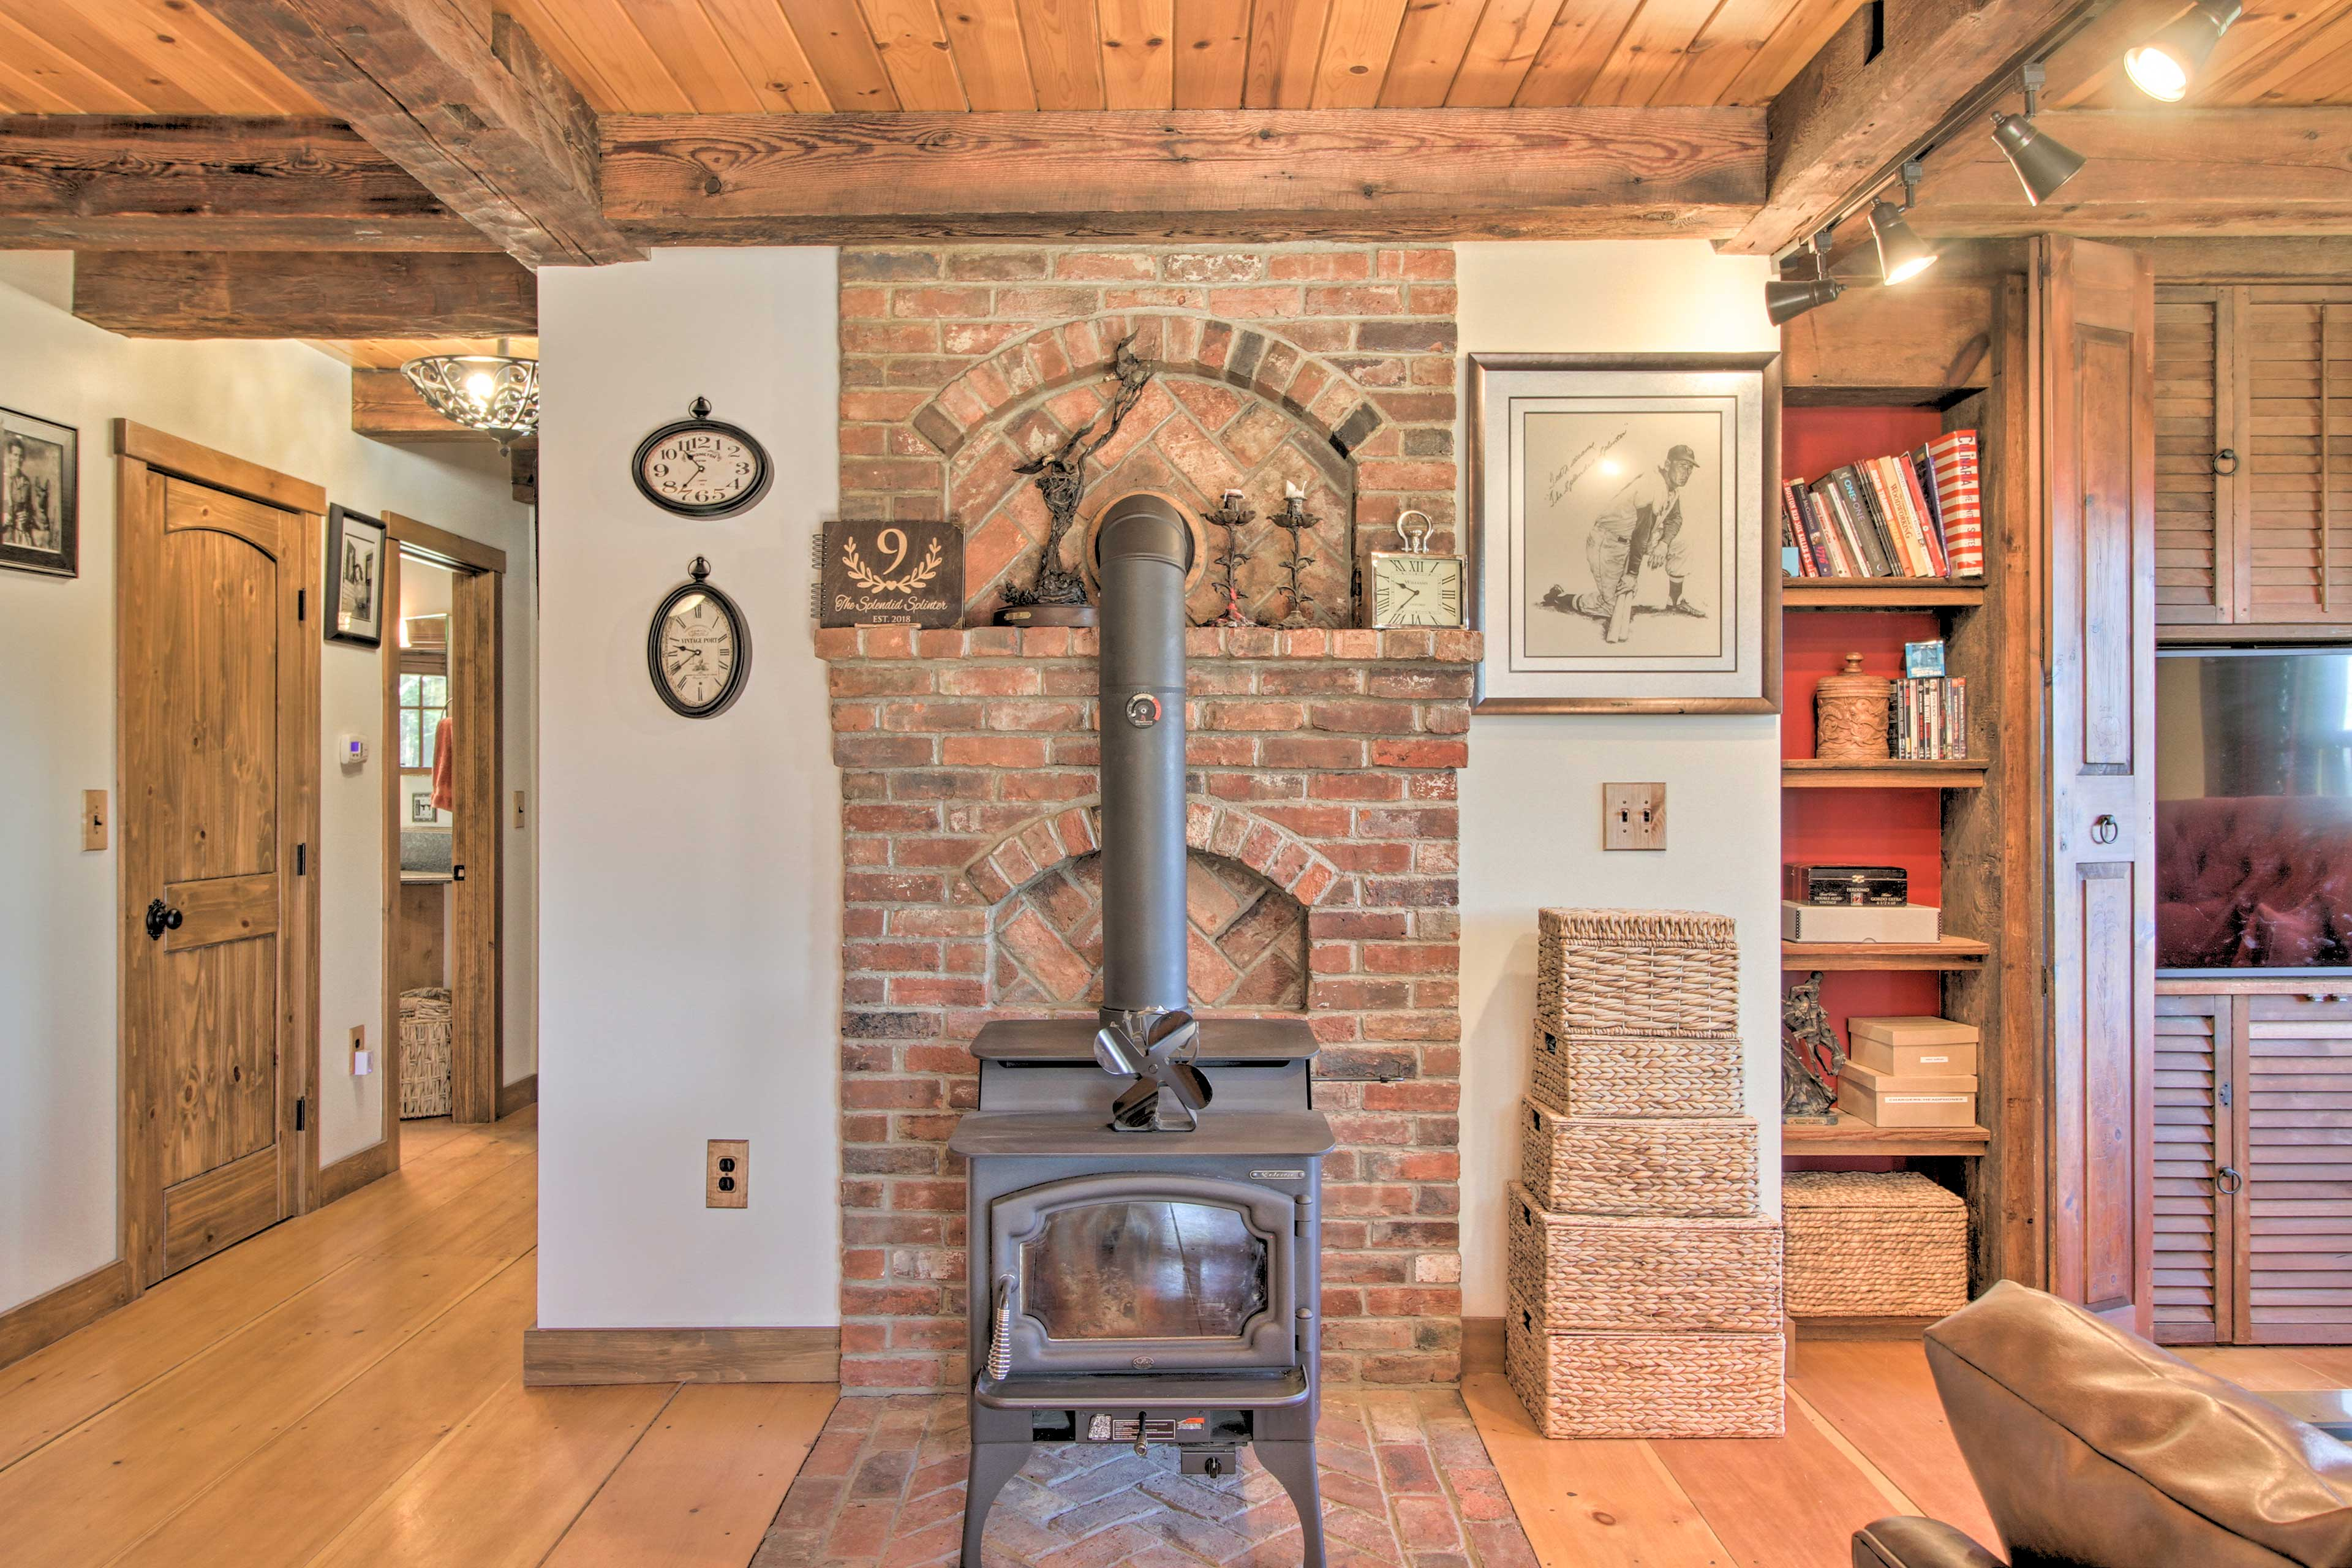 Cozy around the authentic wood-burning stove to stay warm in the winter!